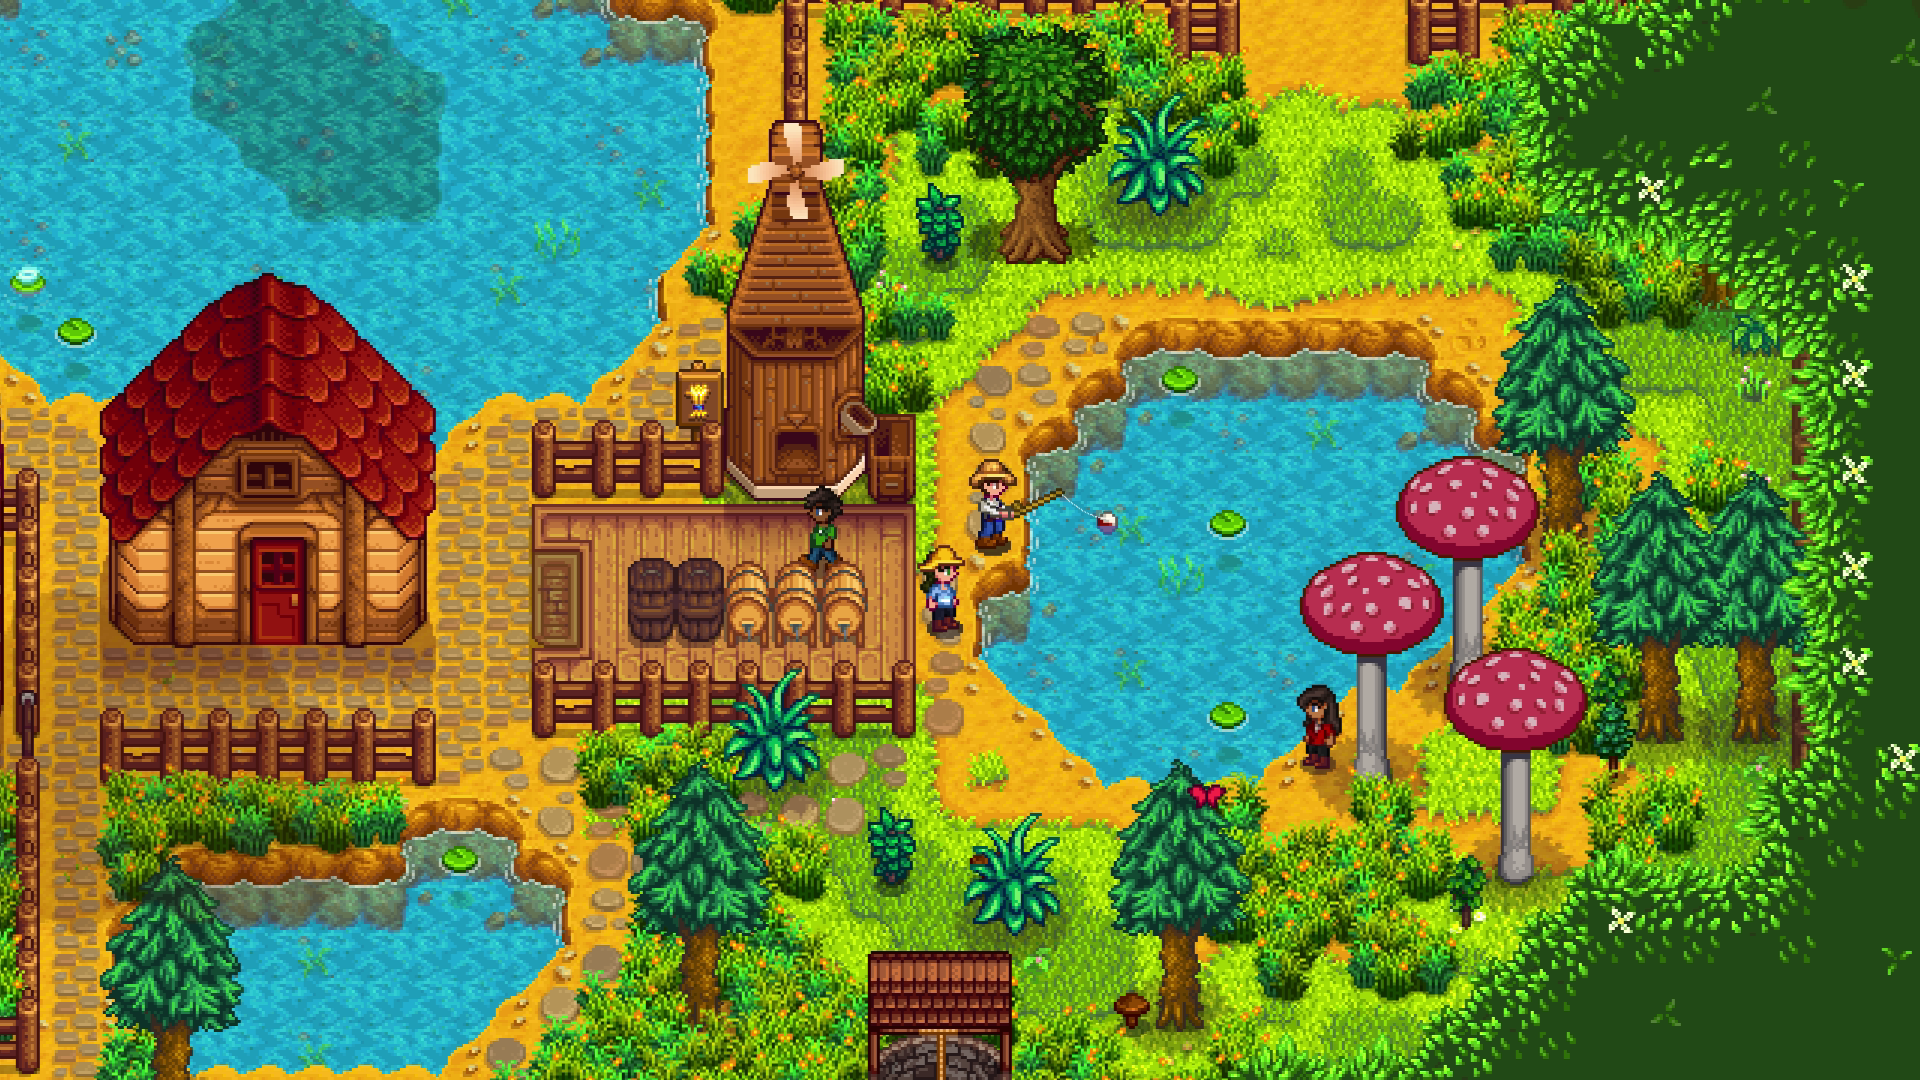 Players fish together in Stardew Valley's multiplayer mode